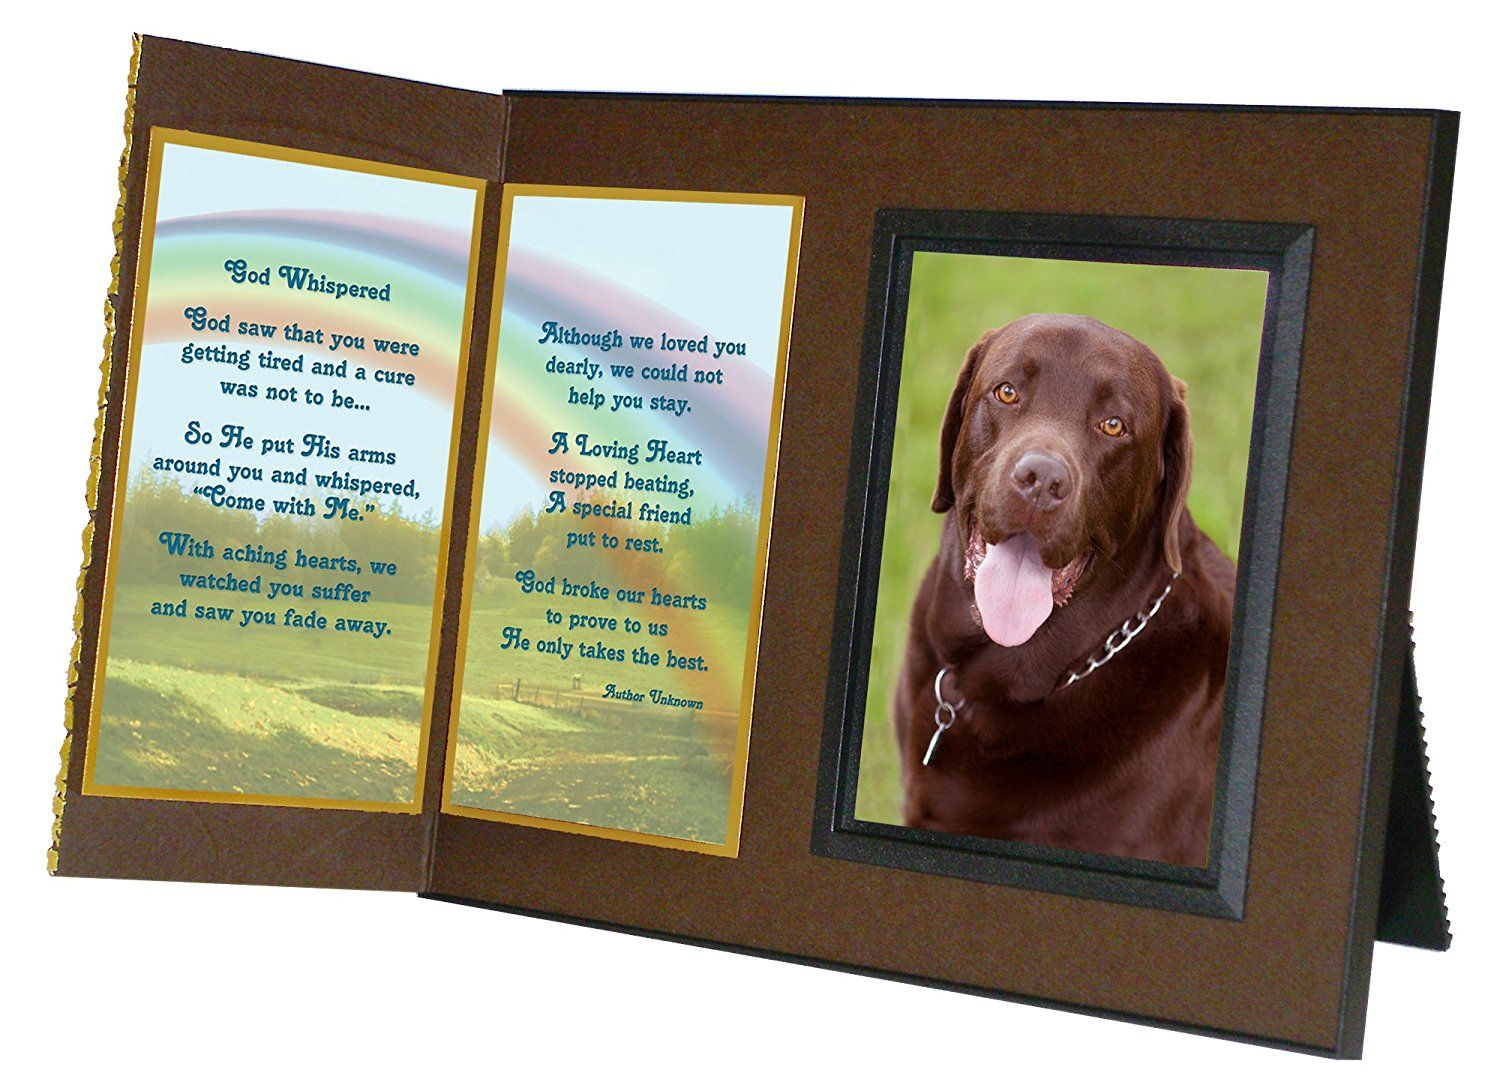 God whispered pet memorial picture frame and pet loss sympathy god whispered pet memorial picture frame and pet loss sympathy gift package with optional jeuxipadfo Choice Image